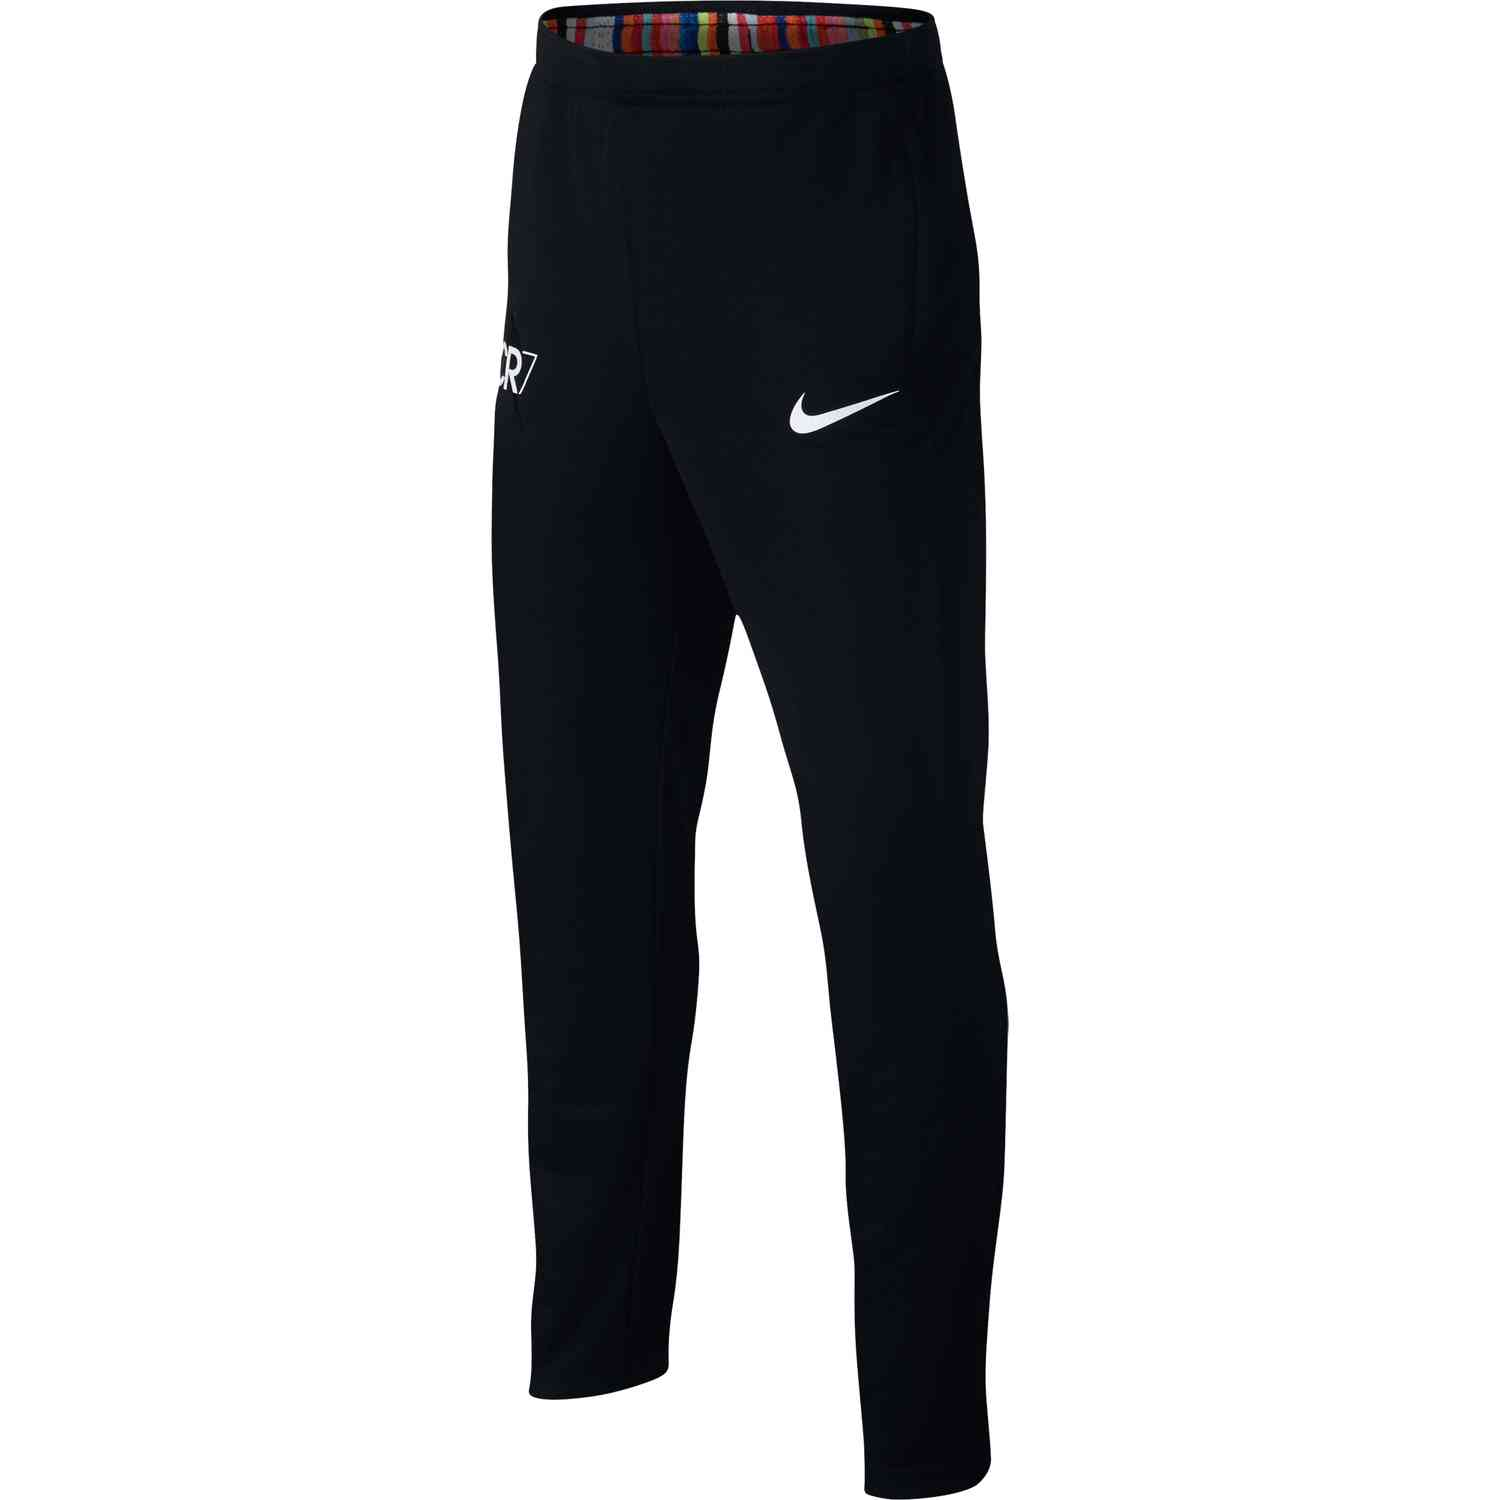 0edaf9f68 Nike Kids Training Pants - Level Up - SoccerPro